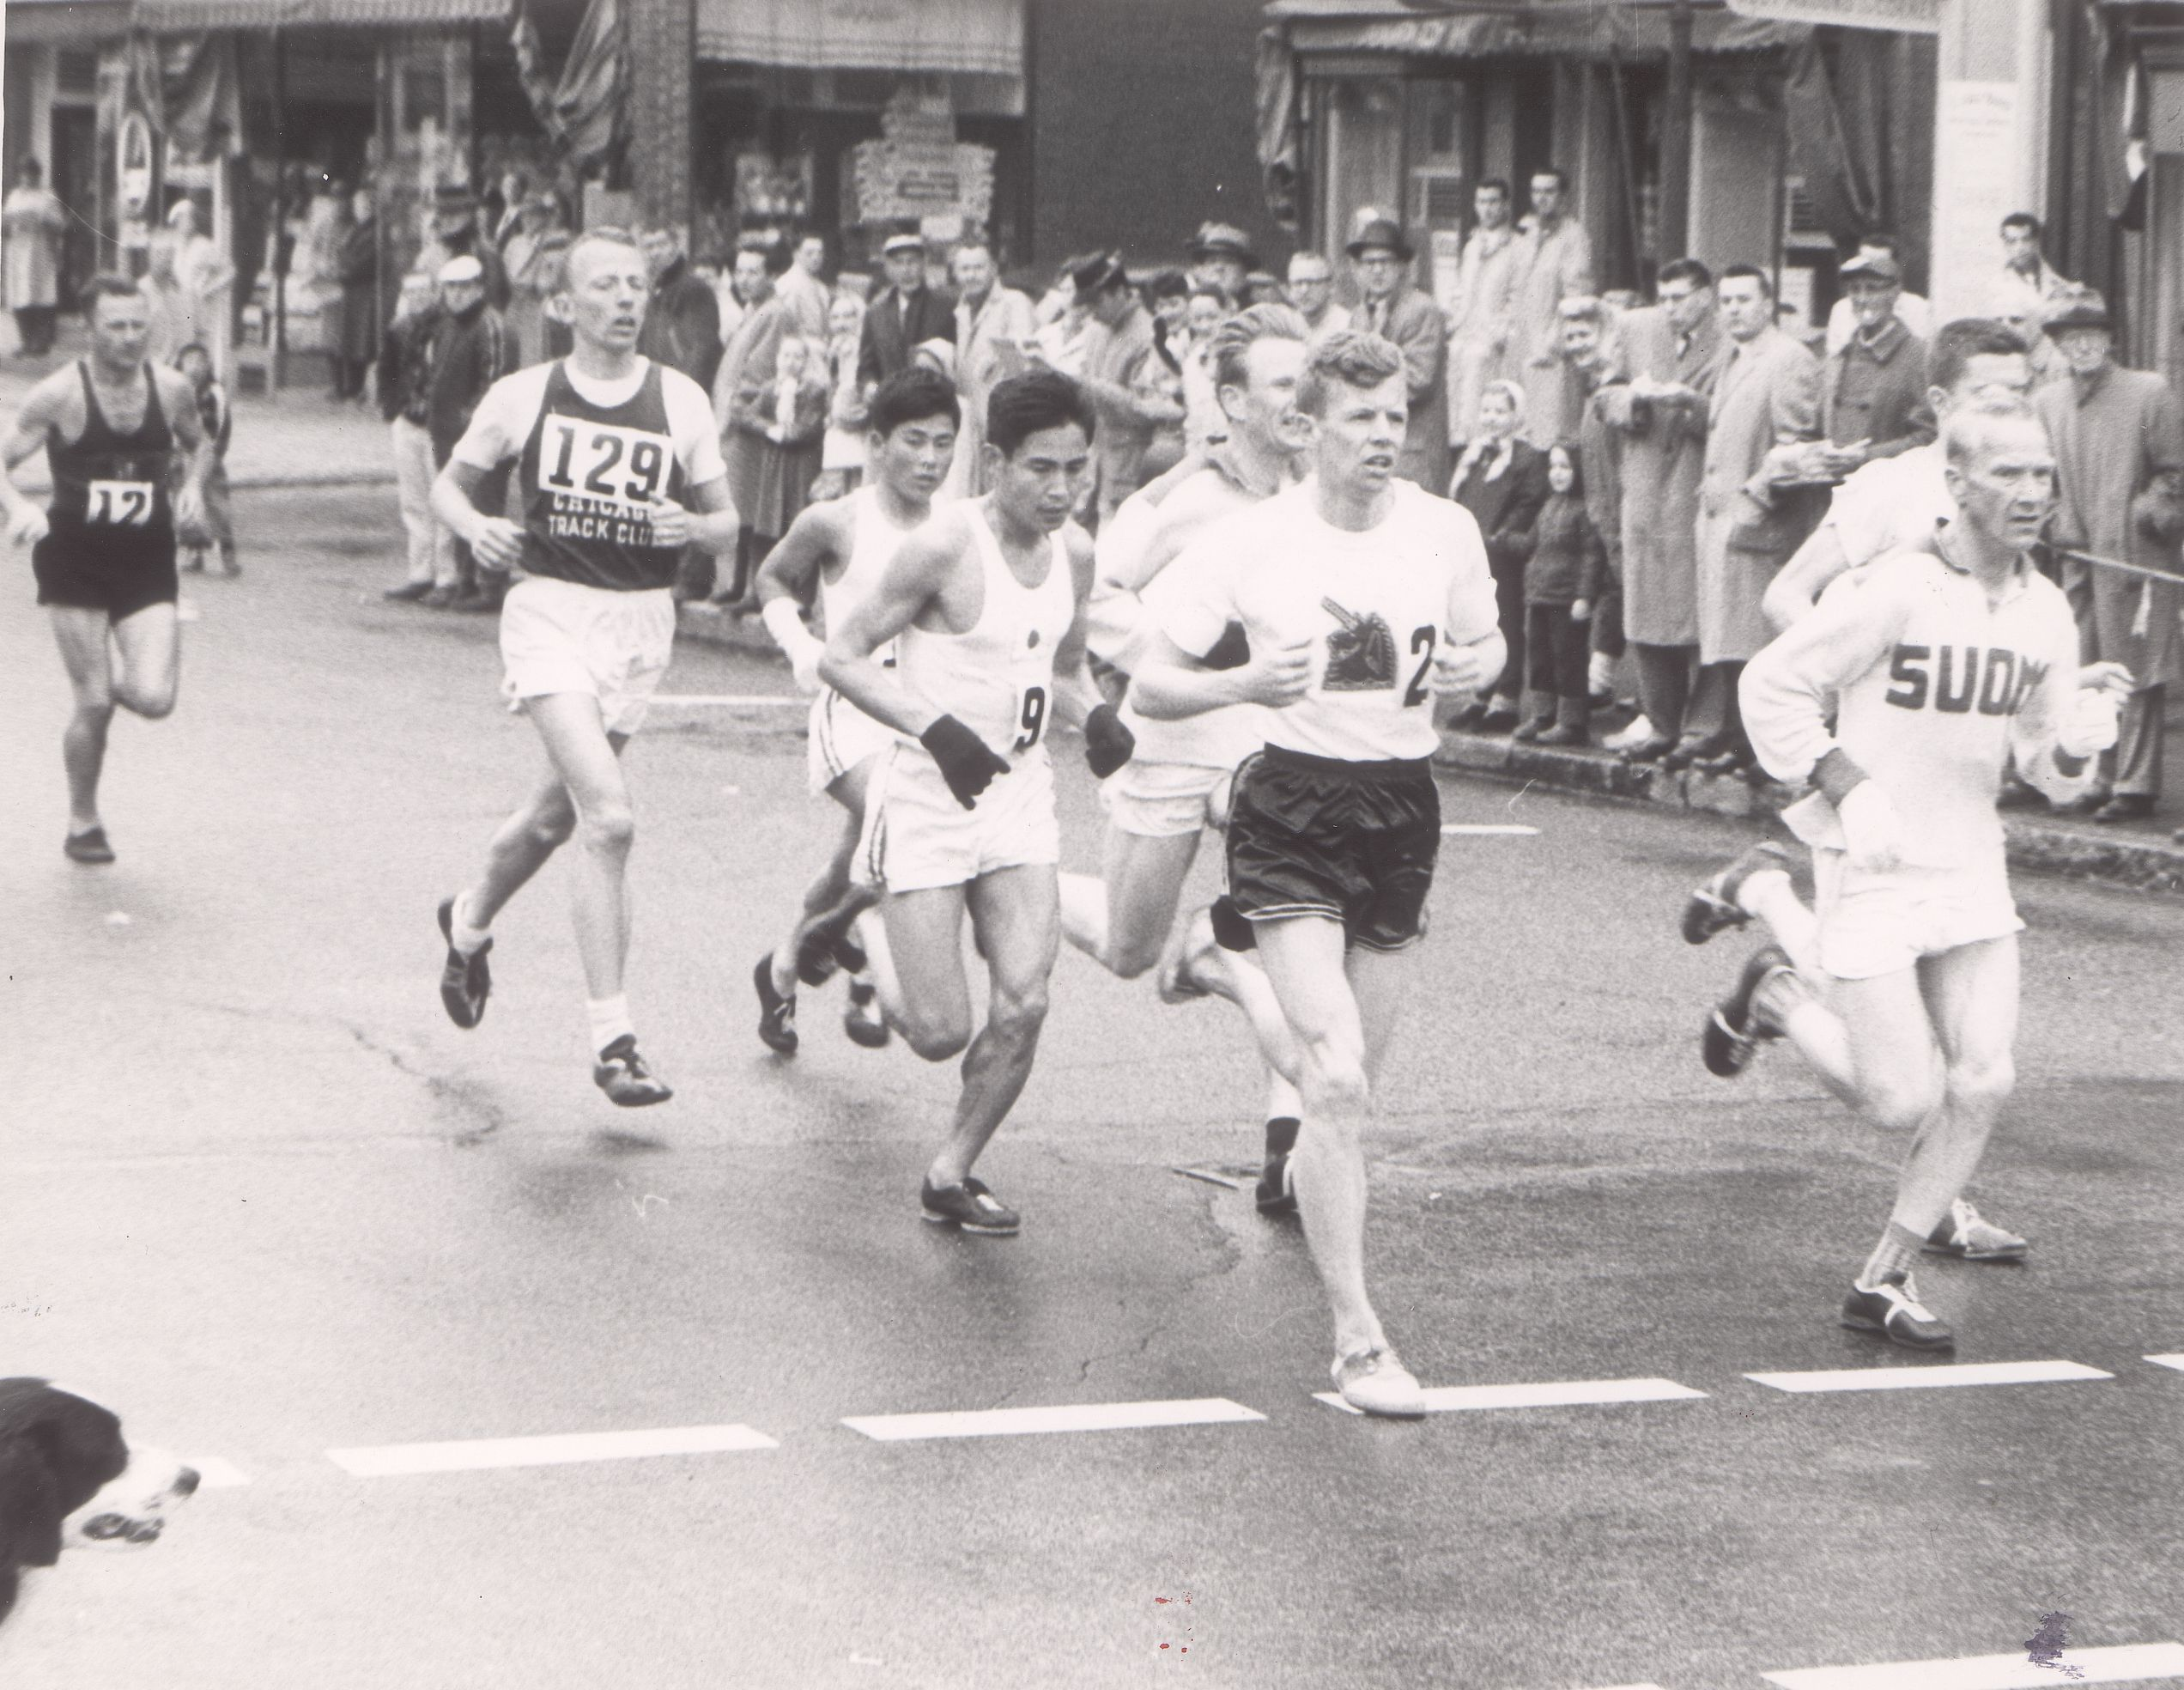 Here's what experienced marathon runners wish they'd known before their first races